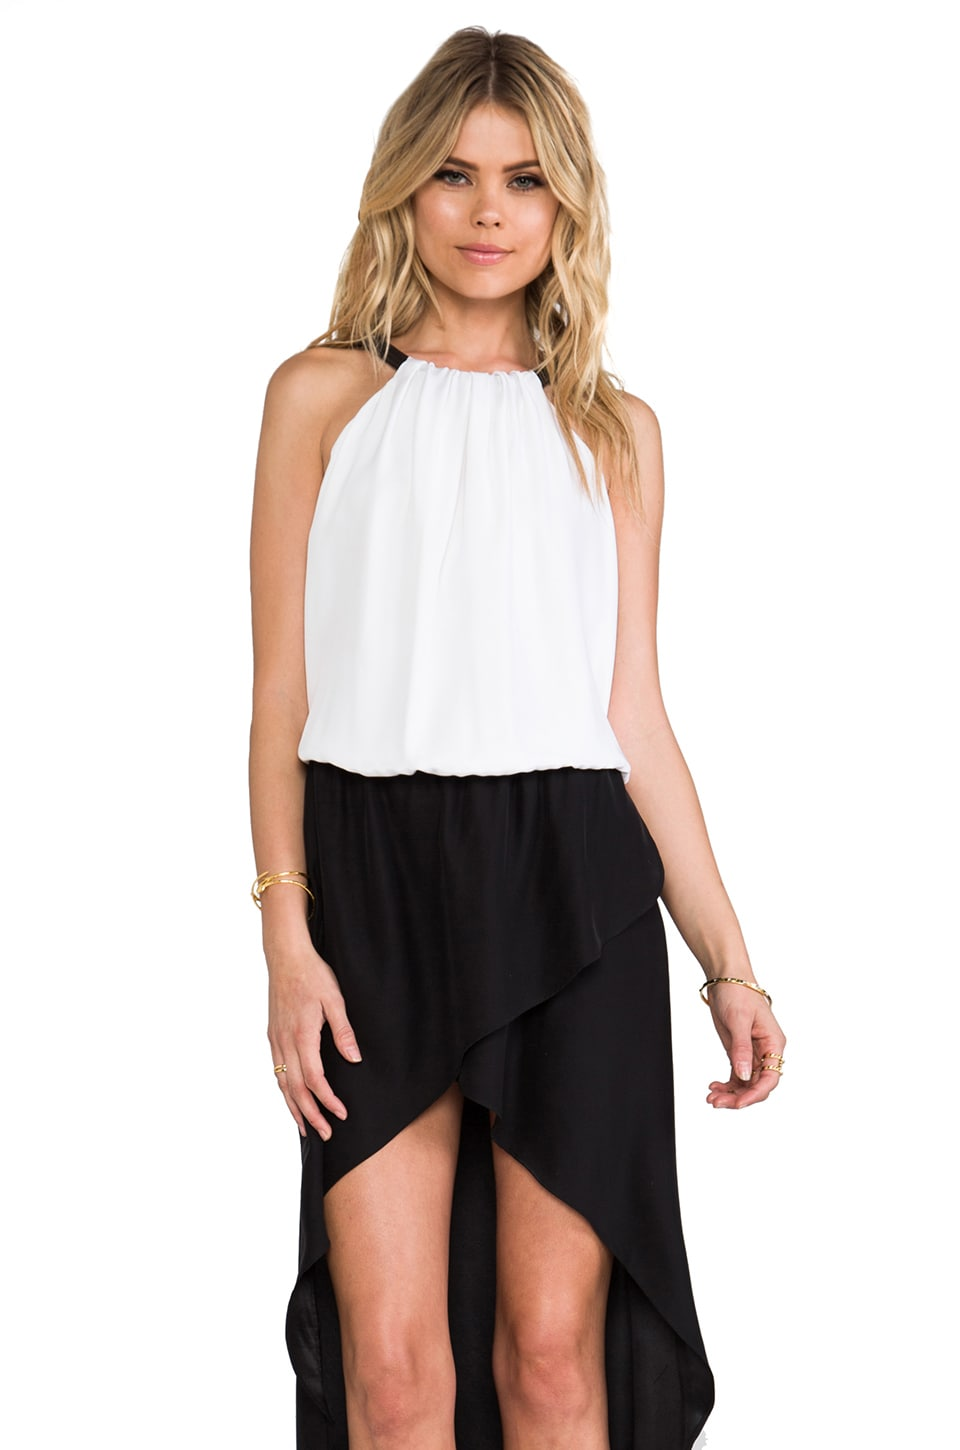 Alexis Swift Dress in Black & White